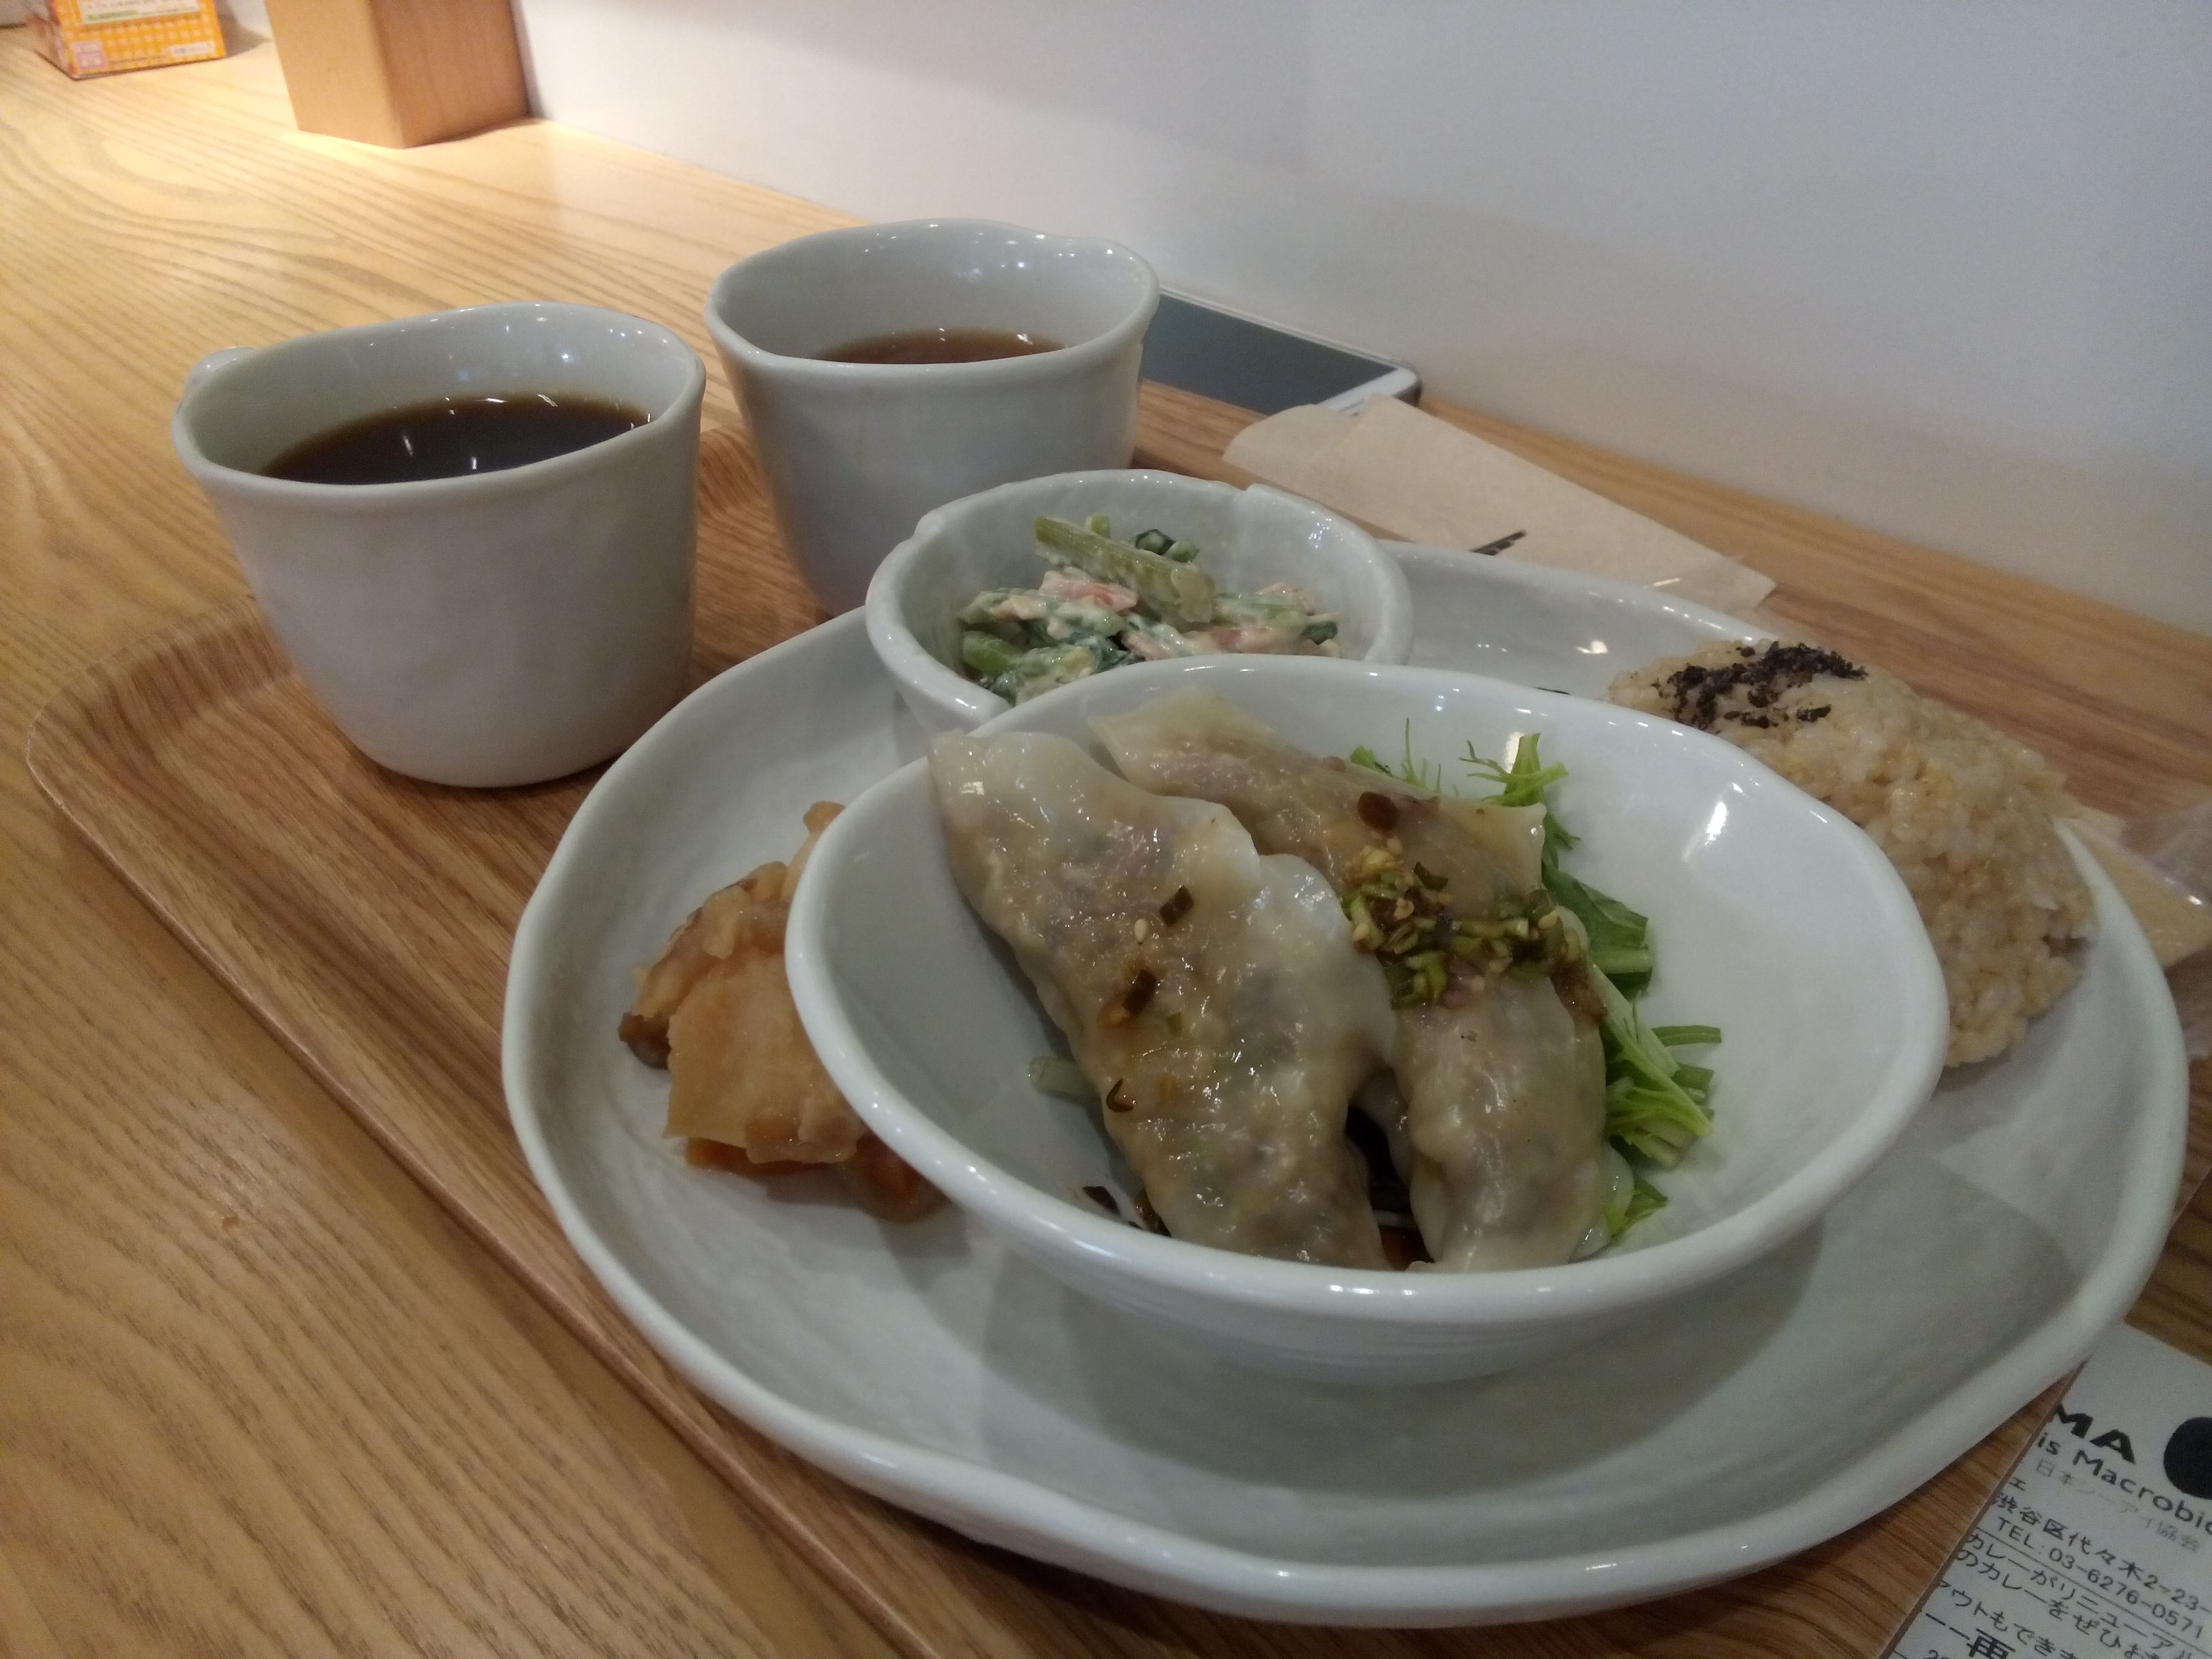 Veggie plate with gyoza